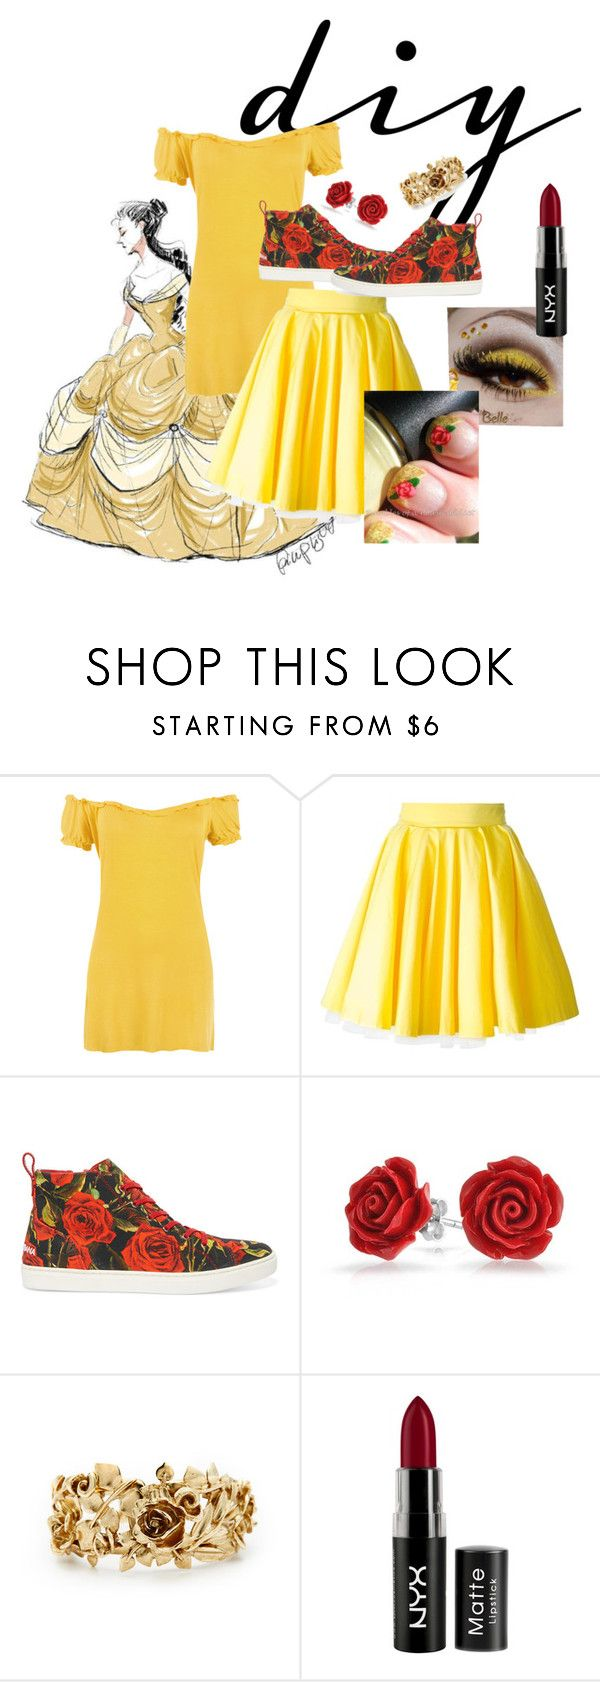 """DIY Belle Costume"" by laineyclara19 ❤ liked on Polyvore featuring Disney, WearAll, Philipp Plein, Dolce&Gabbana, Bling Jewelry, Oscar de la Renta, NYX, halloweencostume and DIYHalloween"